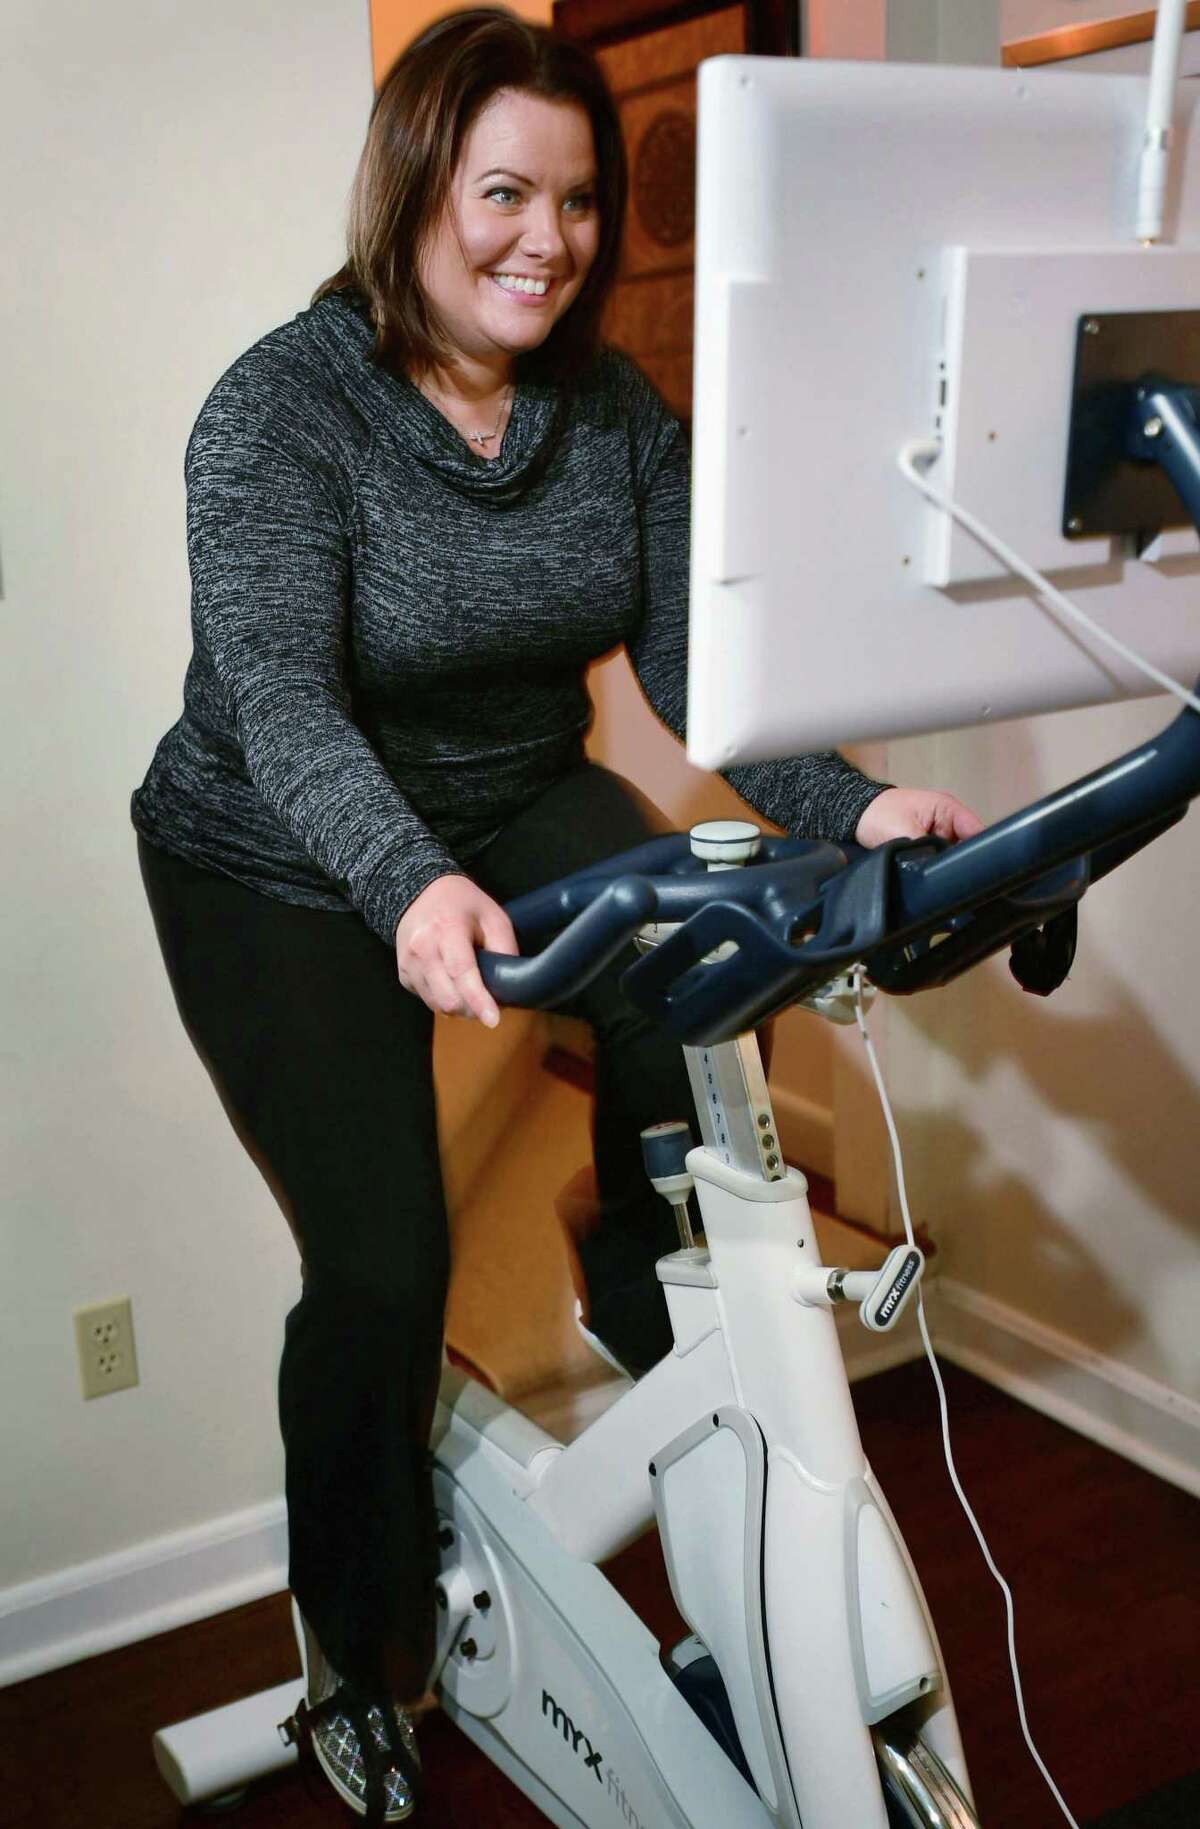 Norwalk resident Sara Pennella uses her Myx Fitness exercise bike Tuesday, February 11, 2020, ather home in Norwalk, Conn. Pennella is one of the first users of the exercise bikes made by Greenwich-based Myx Fitness.